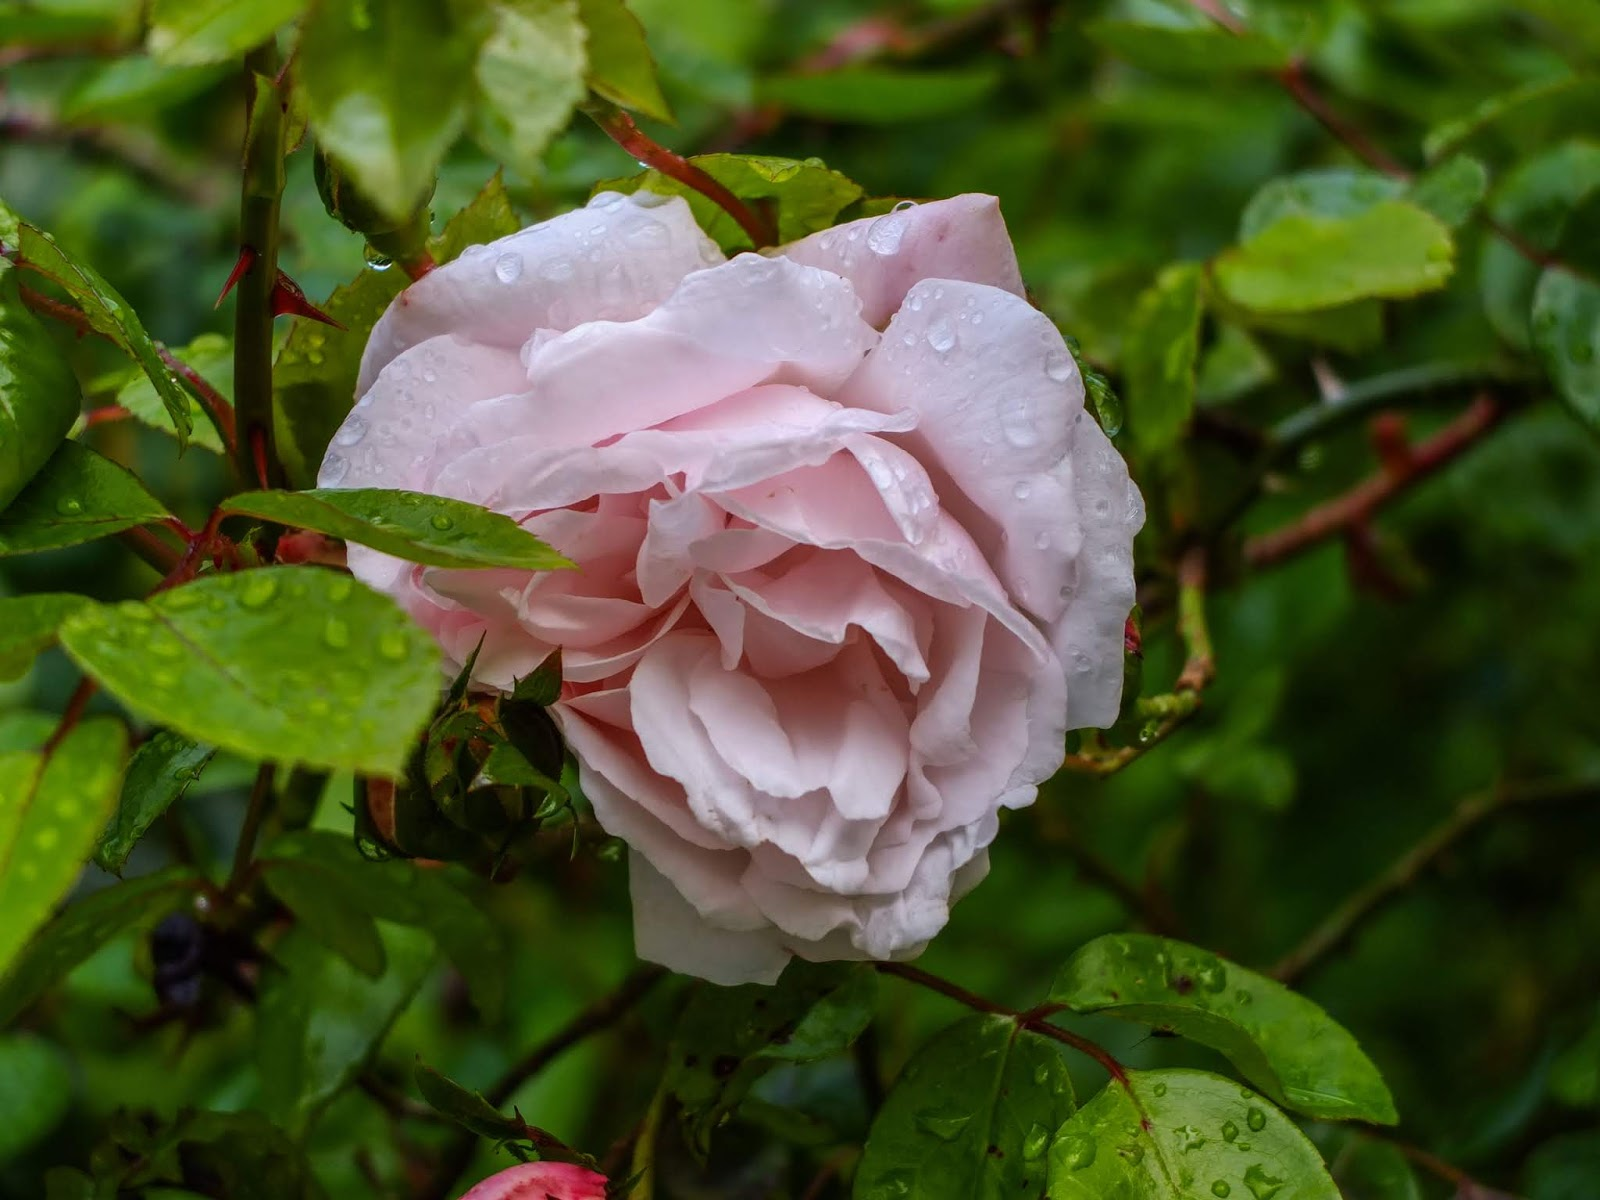 A light pink rose surrounded by green leaves and covered in water droplets.